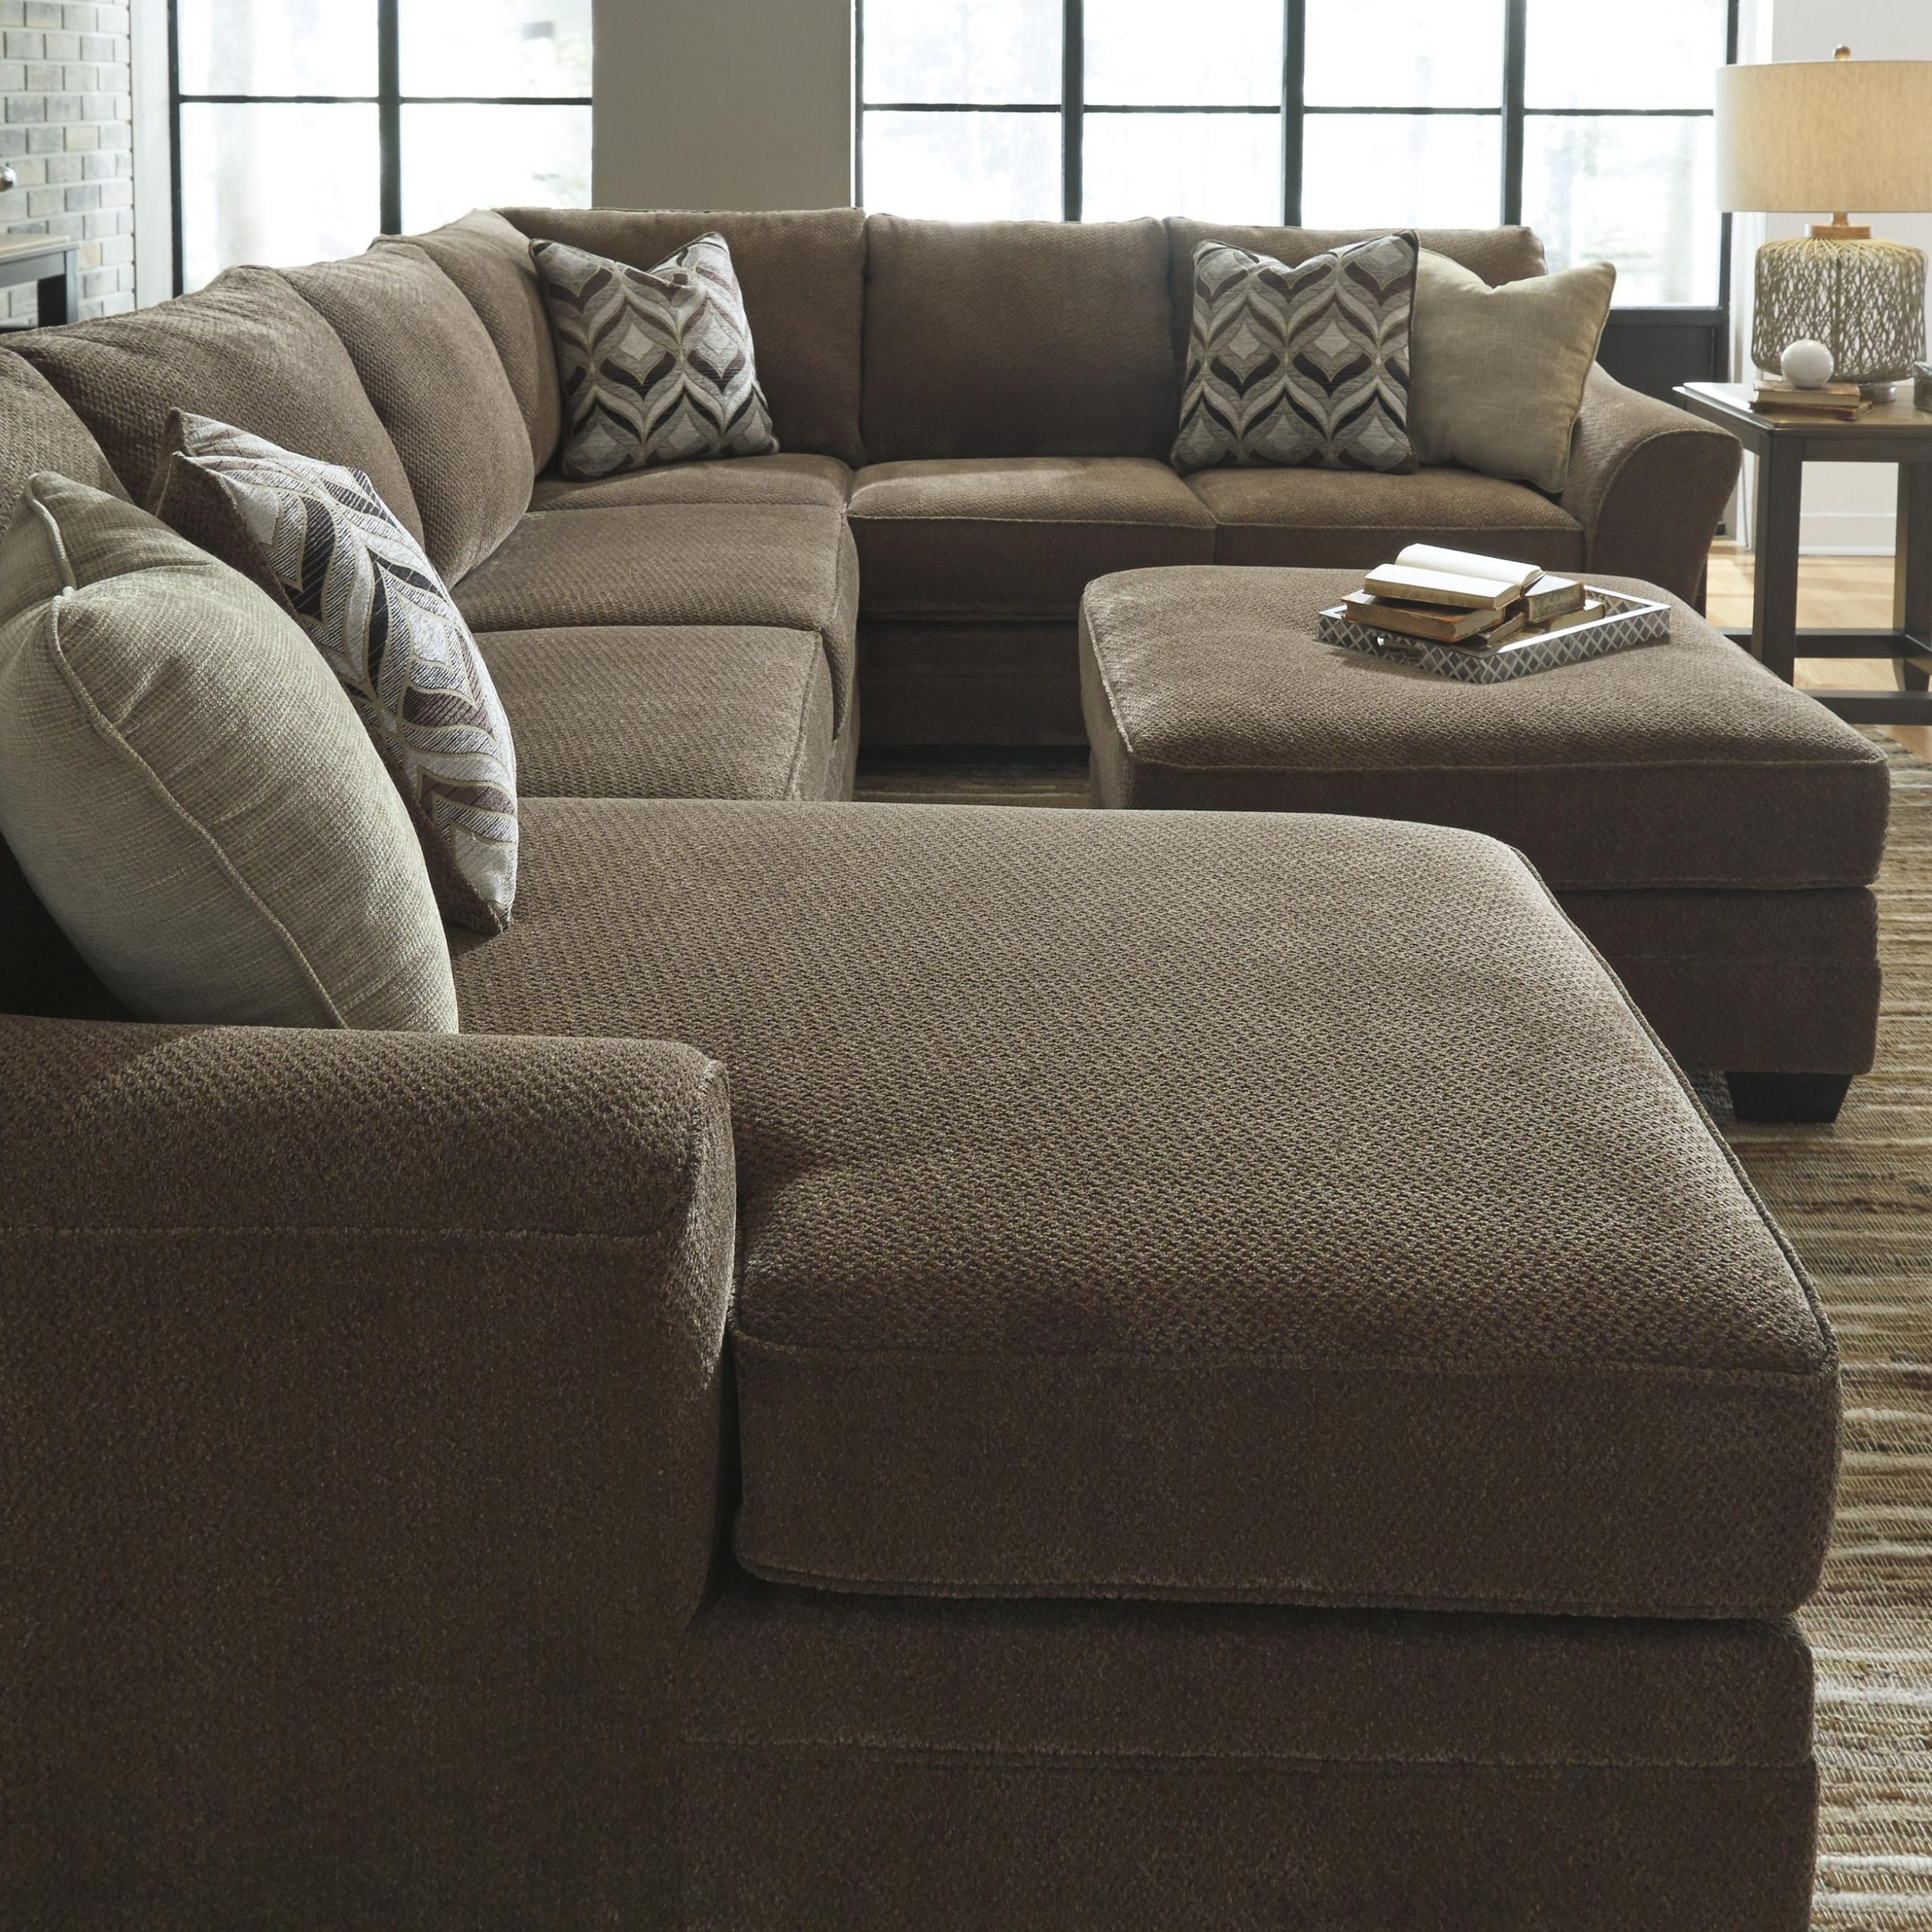 Popular Benchcraft Justyna Contemporary 3 Piece Sectional With Inside 3Pc Polyfiber Sectional Sofas (View 20 of 25)